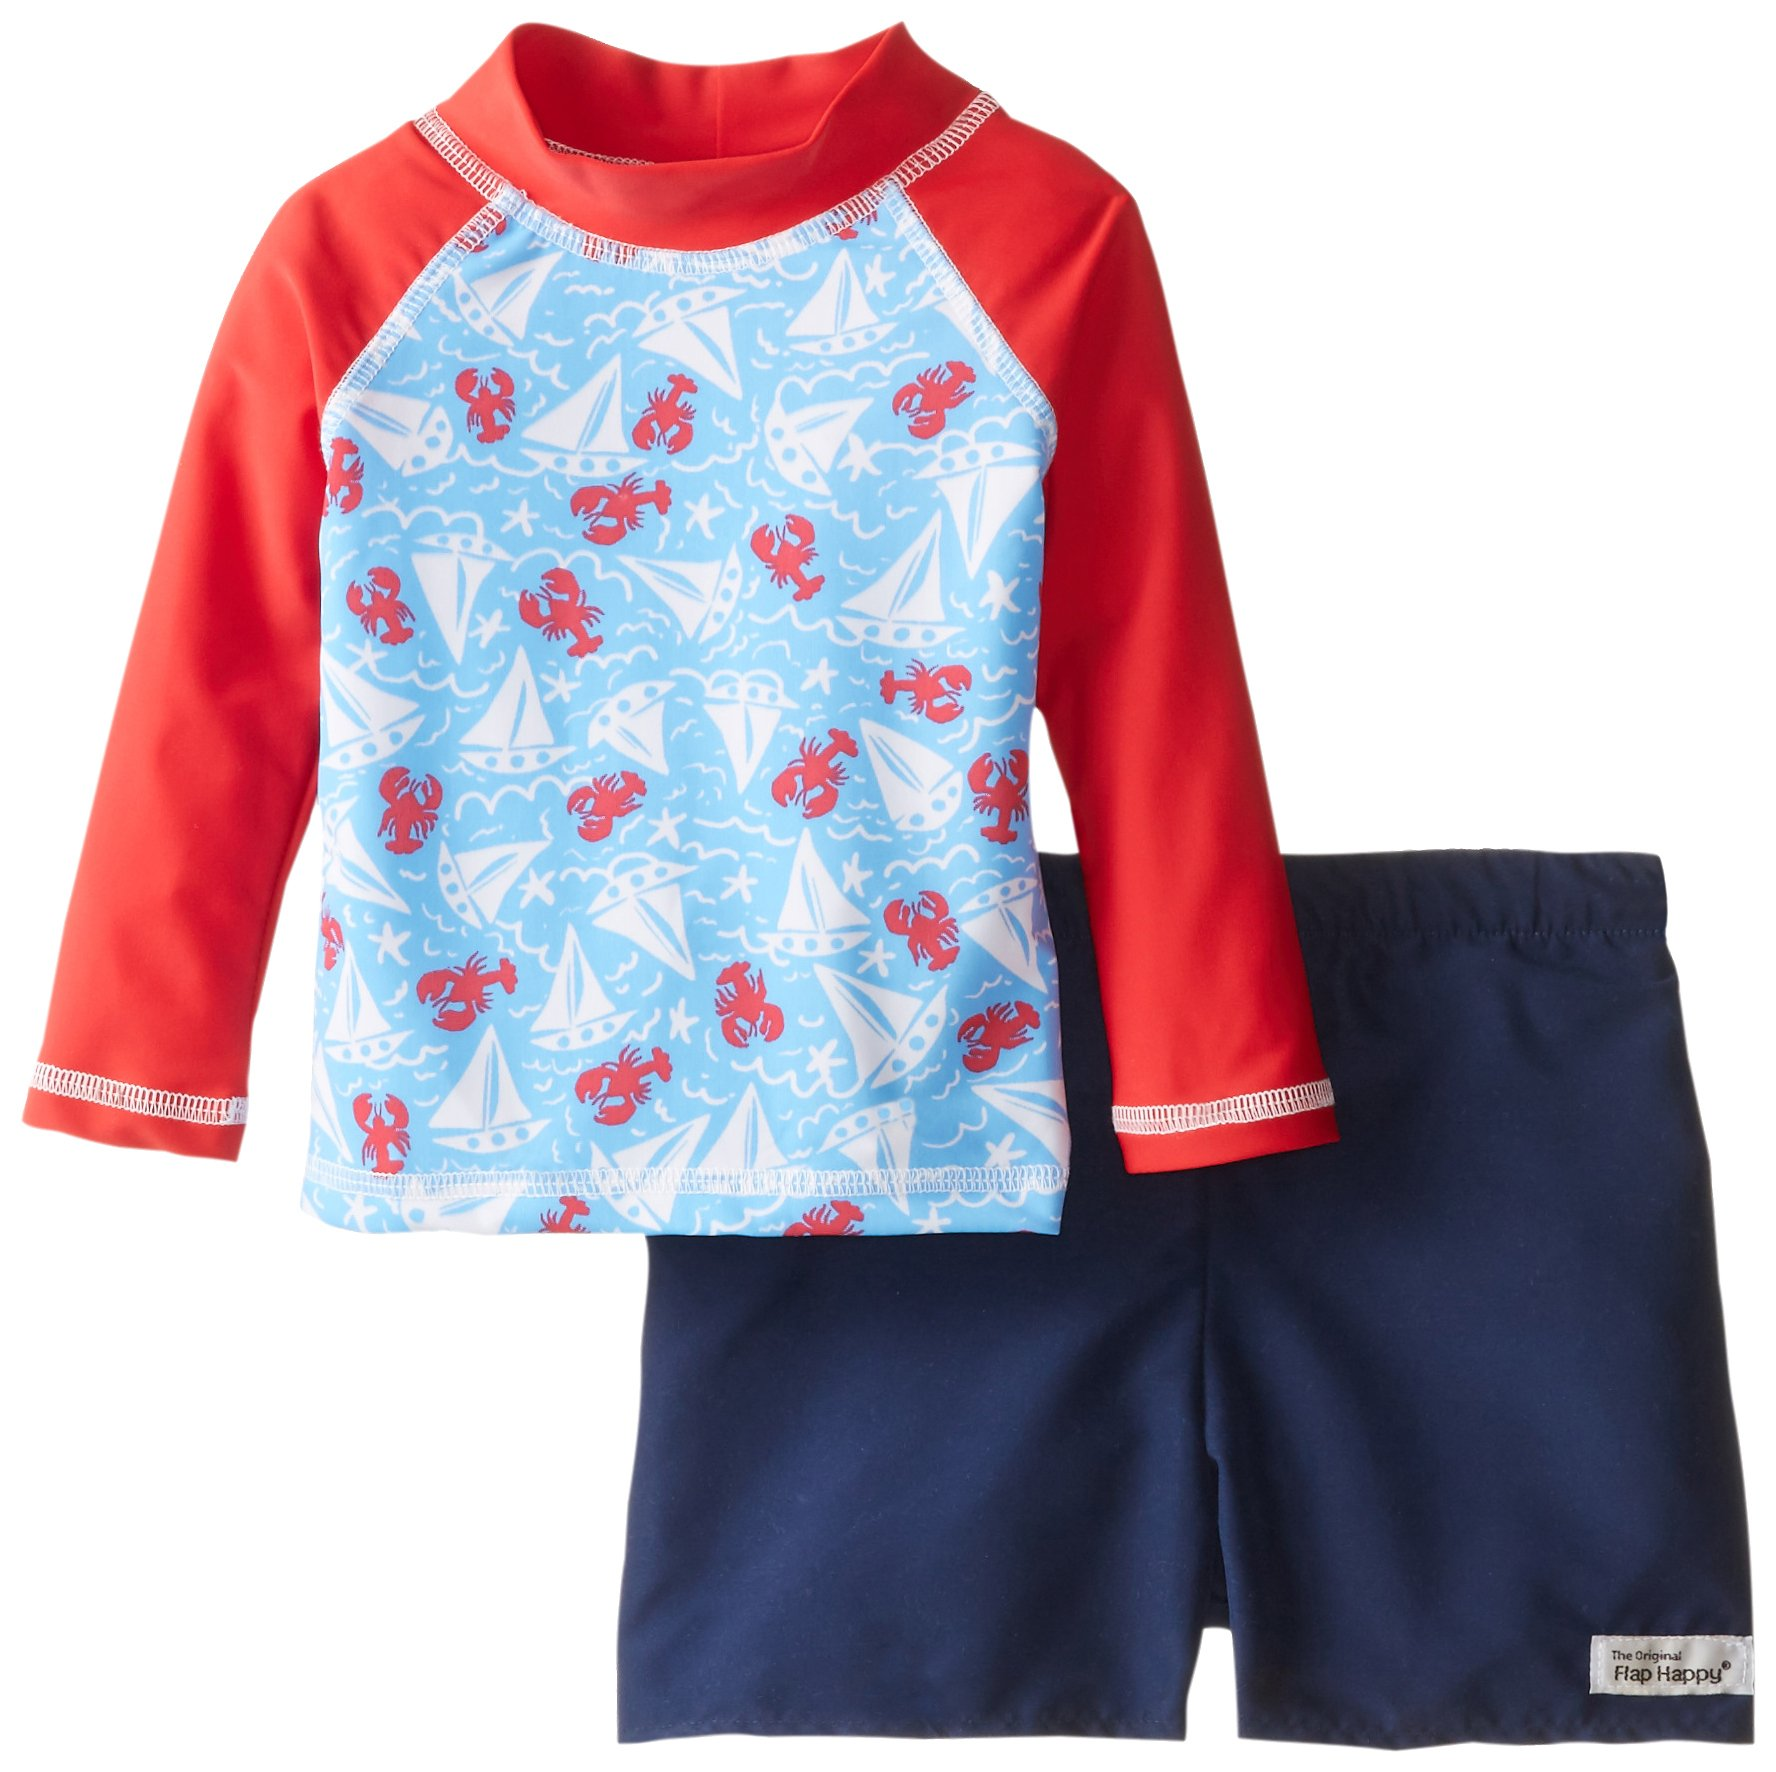 Flap Happy Baby Boys' Rash Guard Swim Long Sleeve Top and Trunks, Somersault Sails, 12 Months by Flap Happy